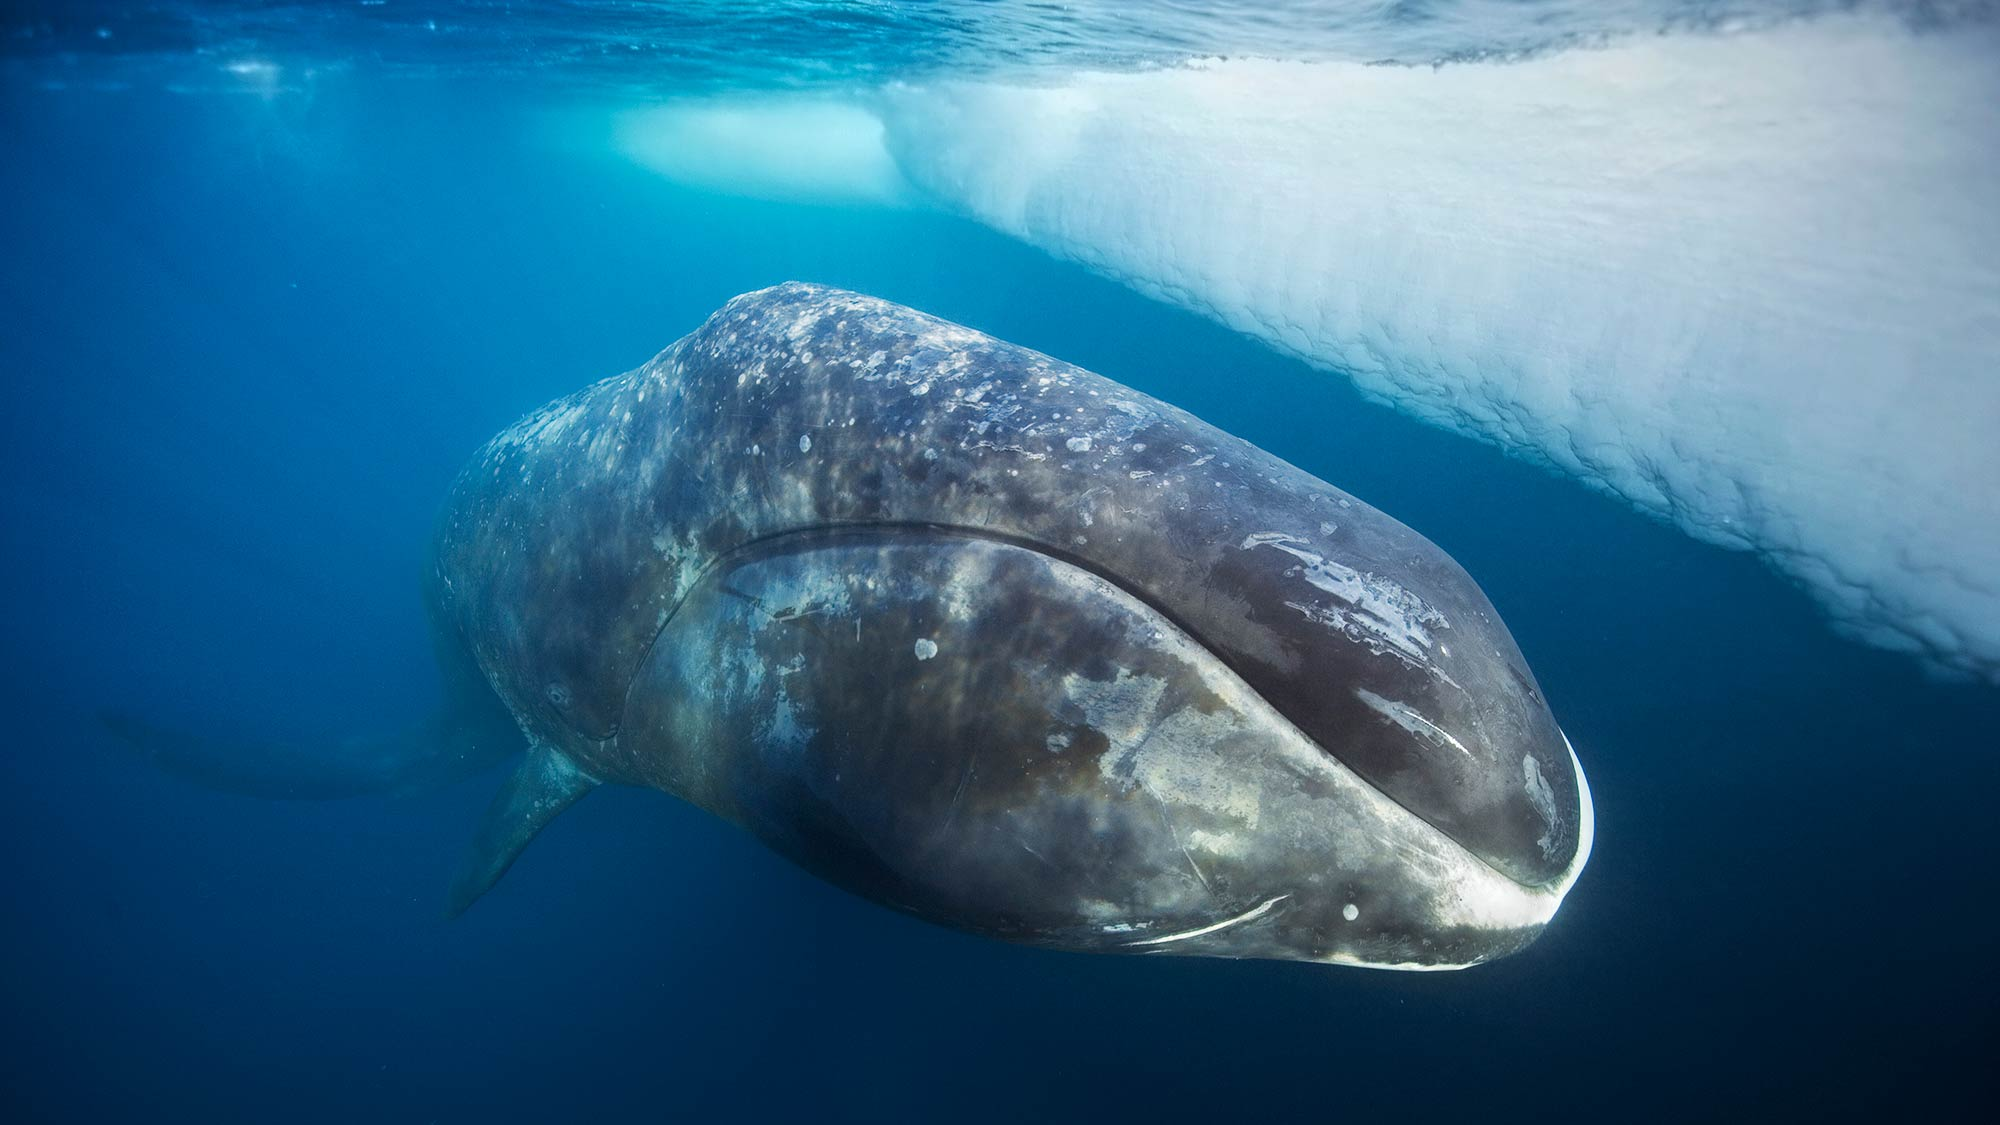 After feeding, a bowhead whale comes to the surface to rest. Lancaster Sound, Northwest Territories, Canada. Photo: Paul Nicklen/Getty Images